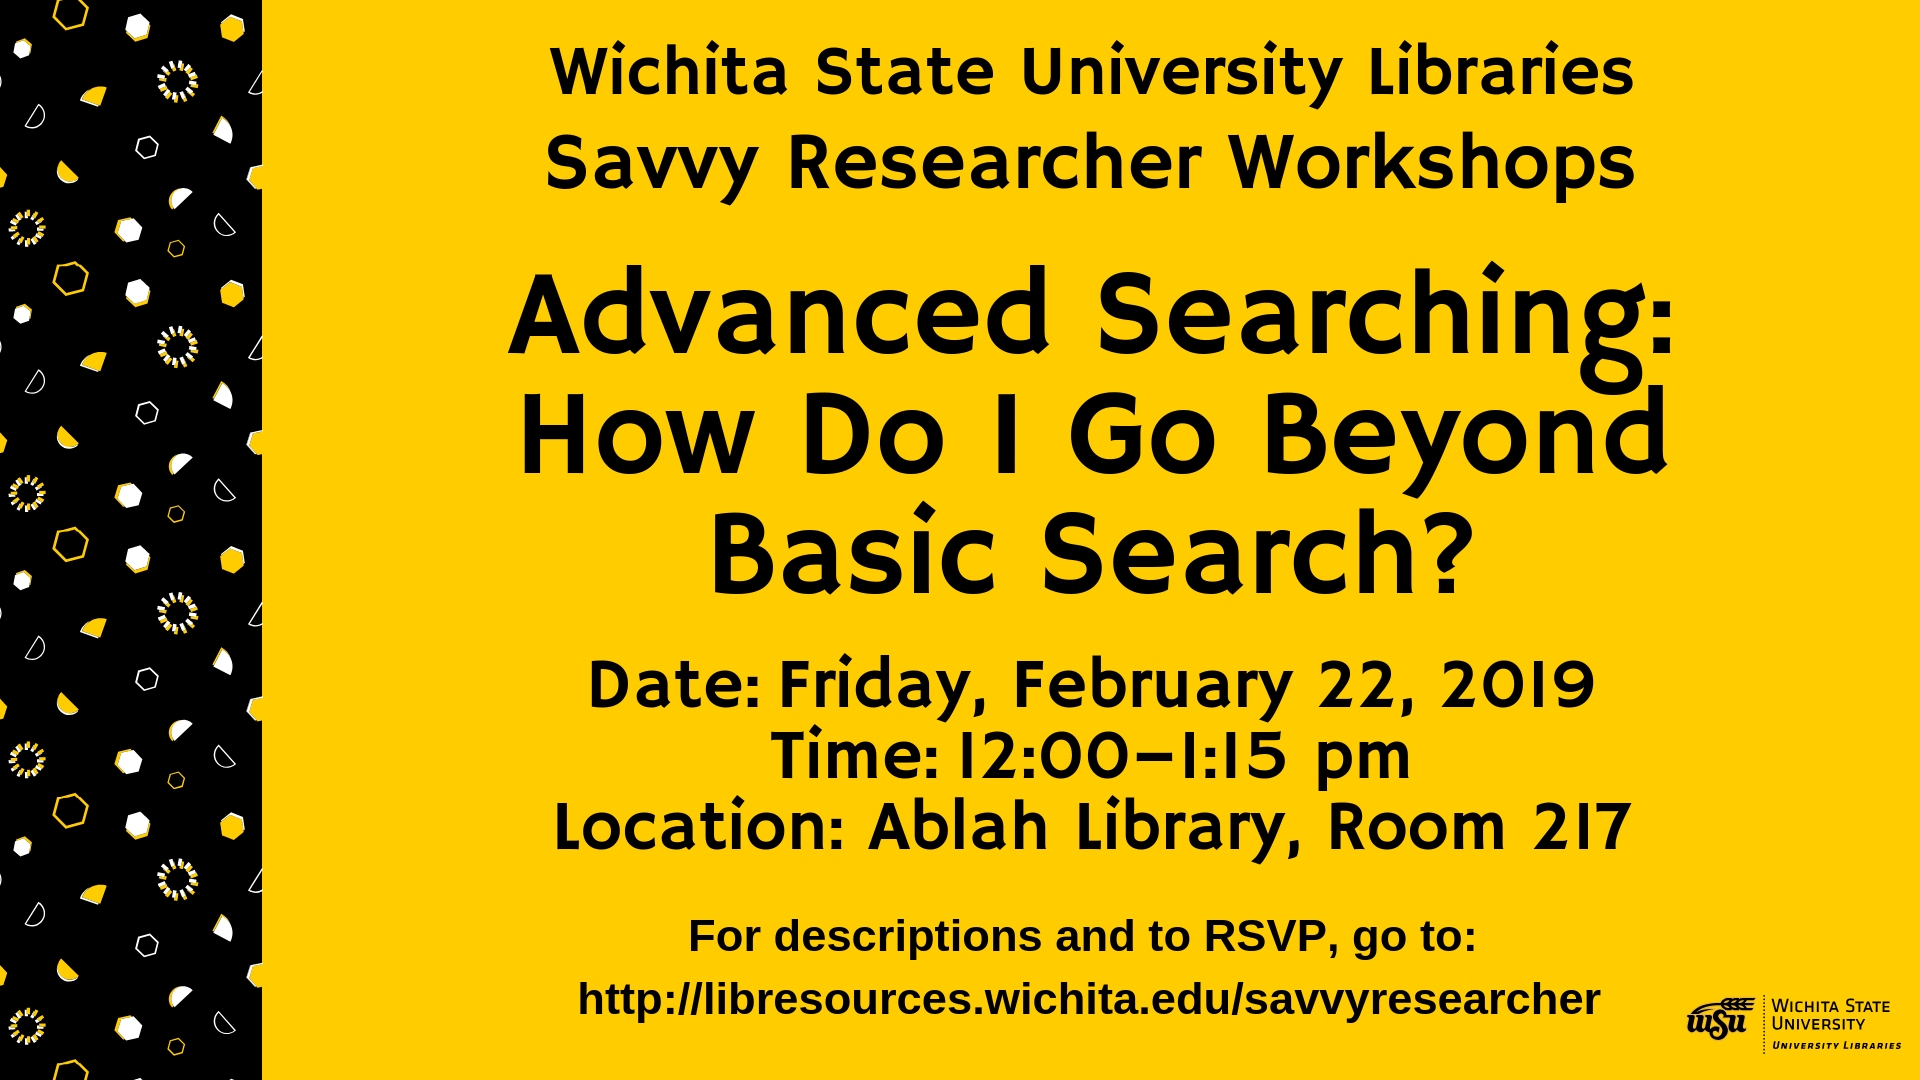 Advanced Searching: How Do I Go Beyond Basic Search?